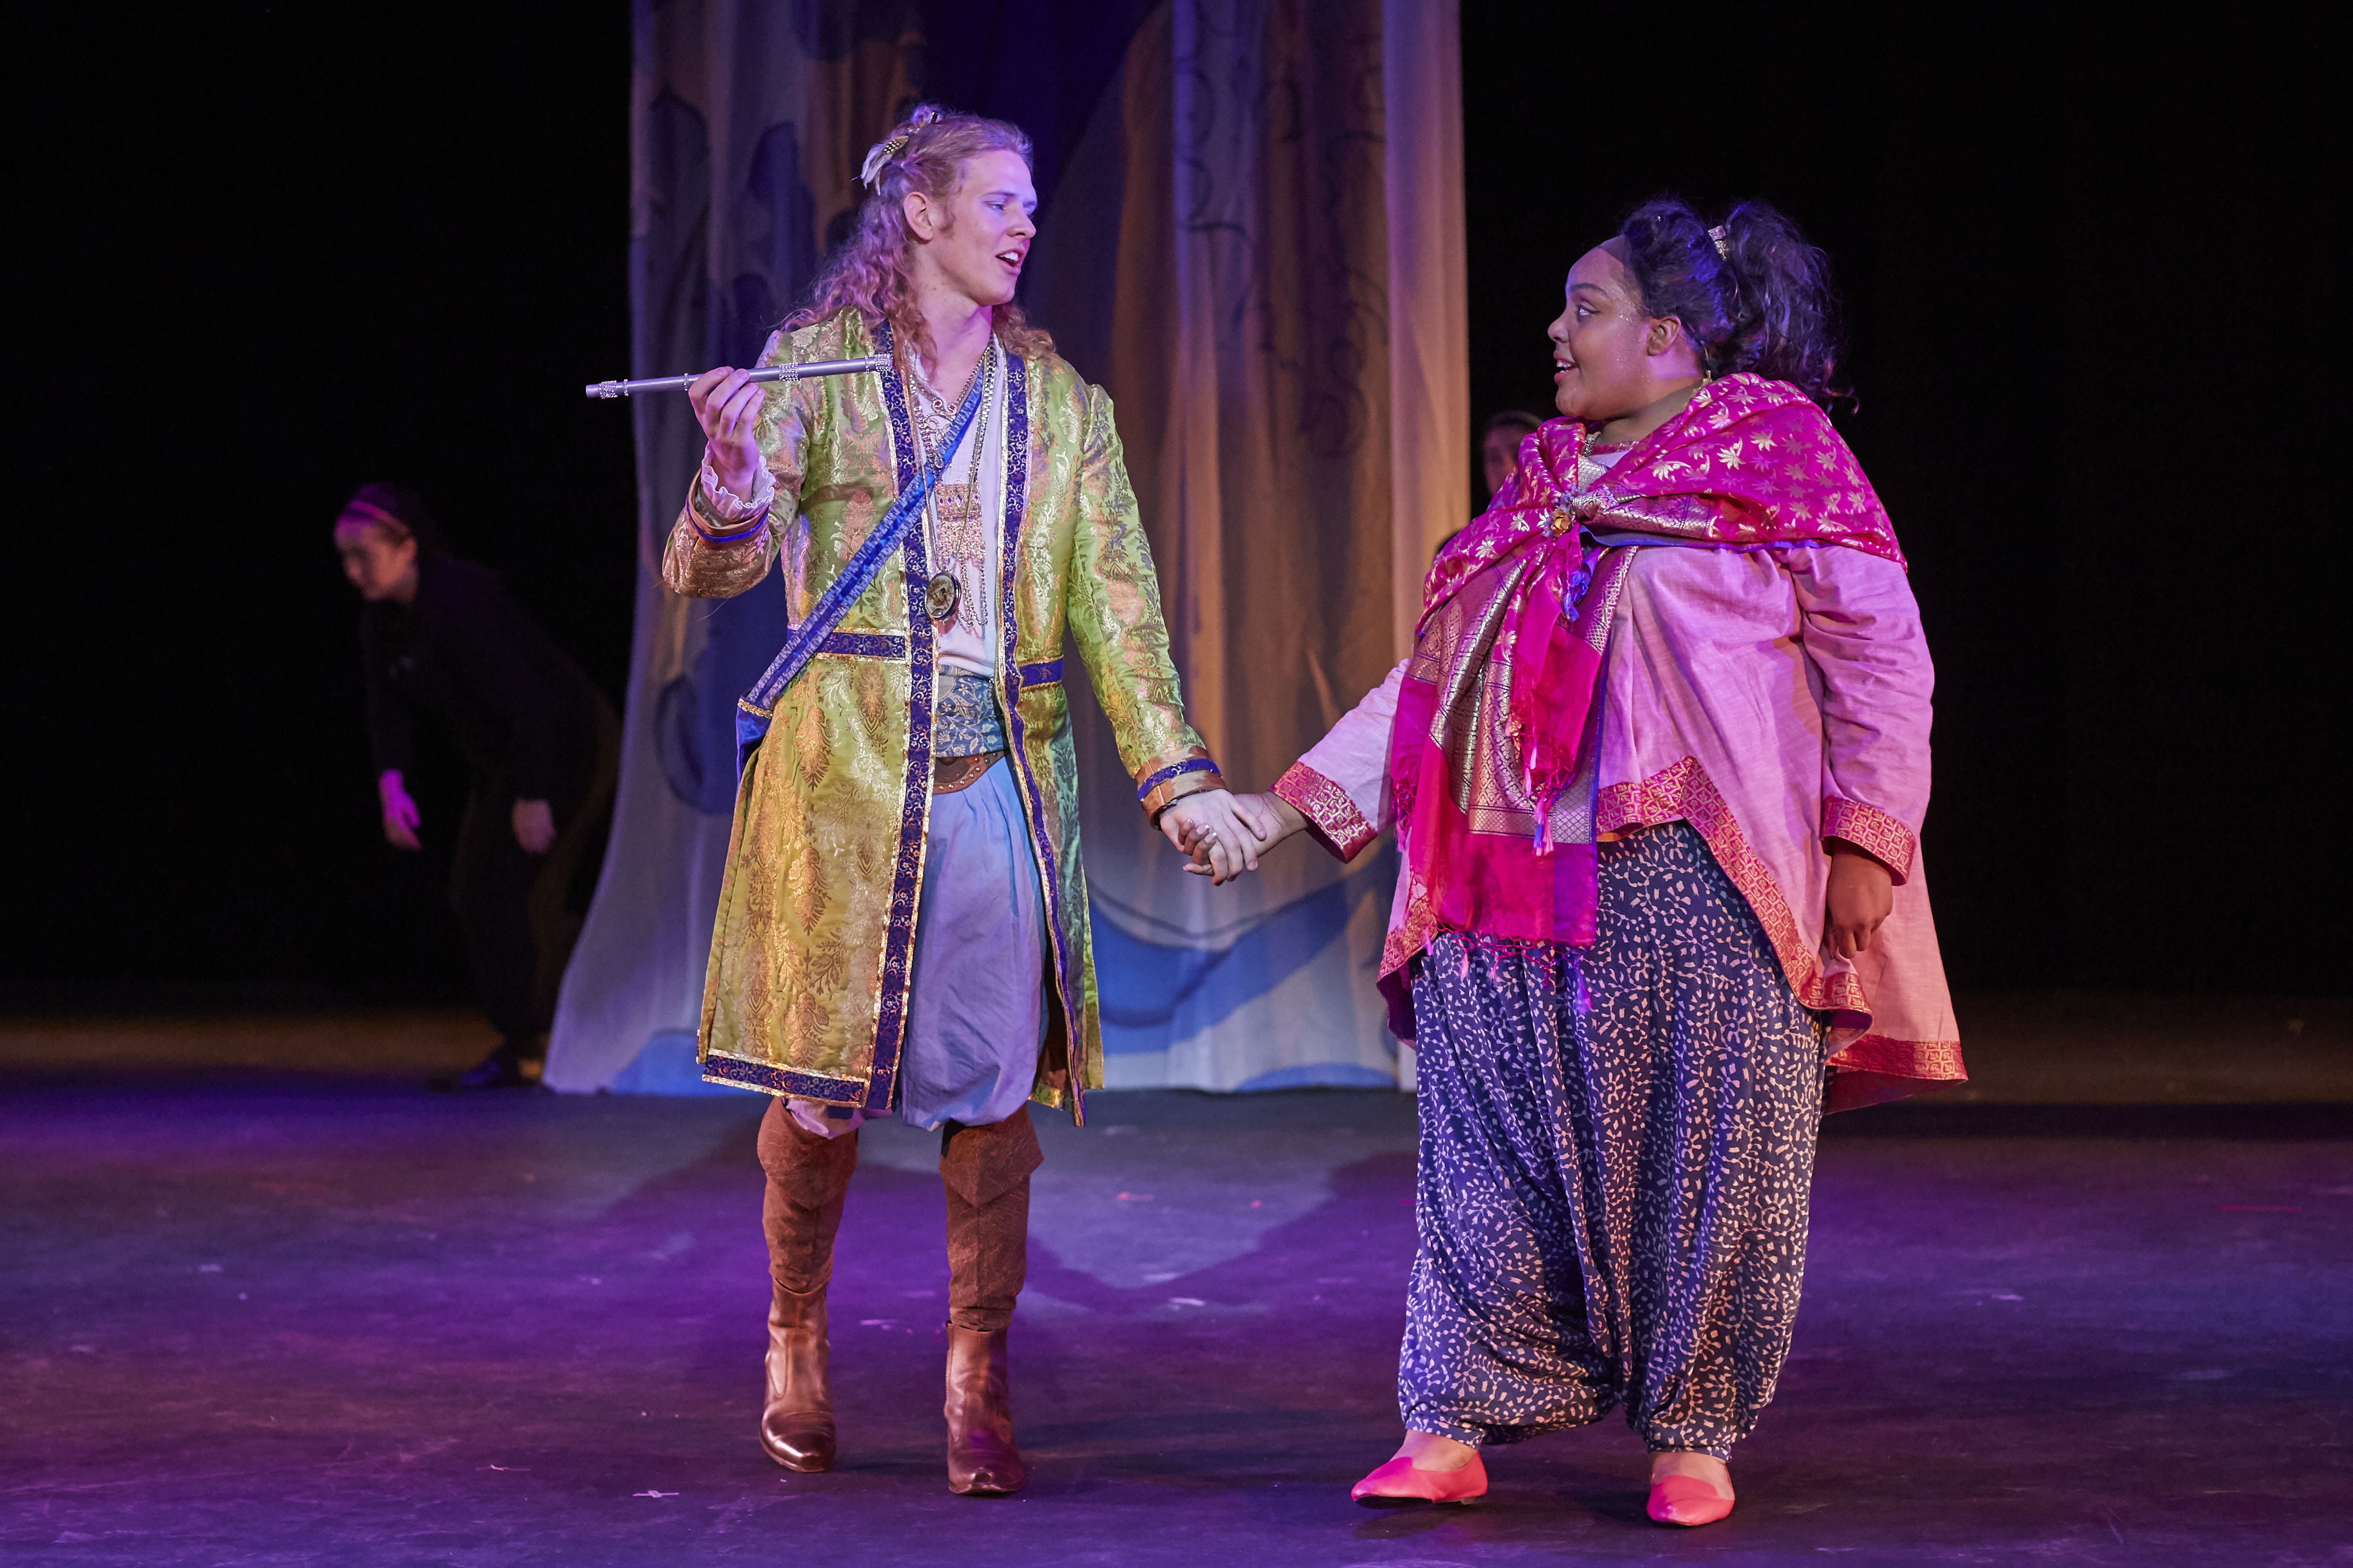 Actors holding hands from the Magic Flute